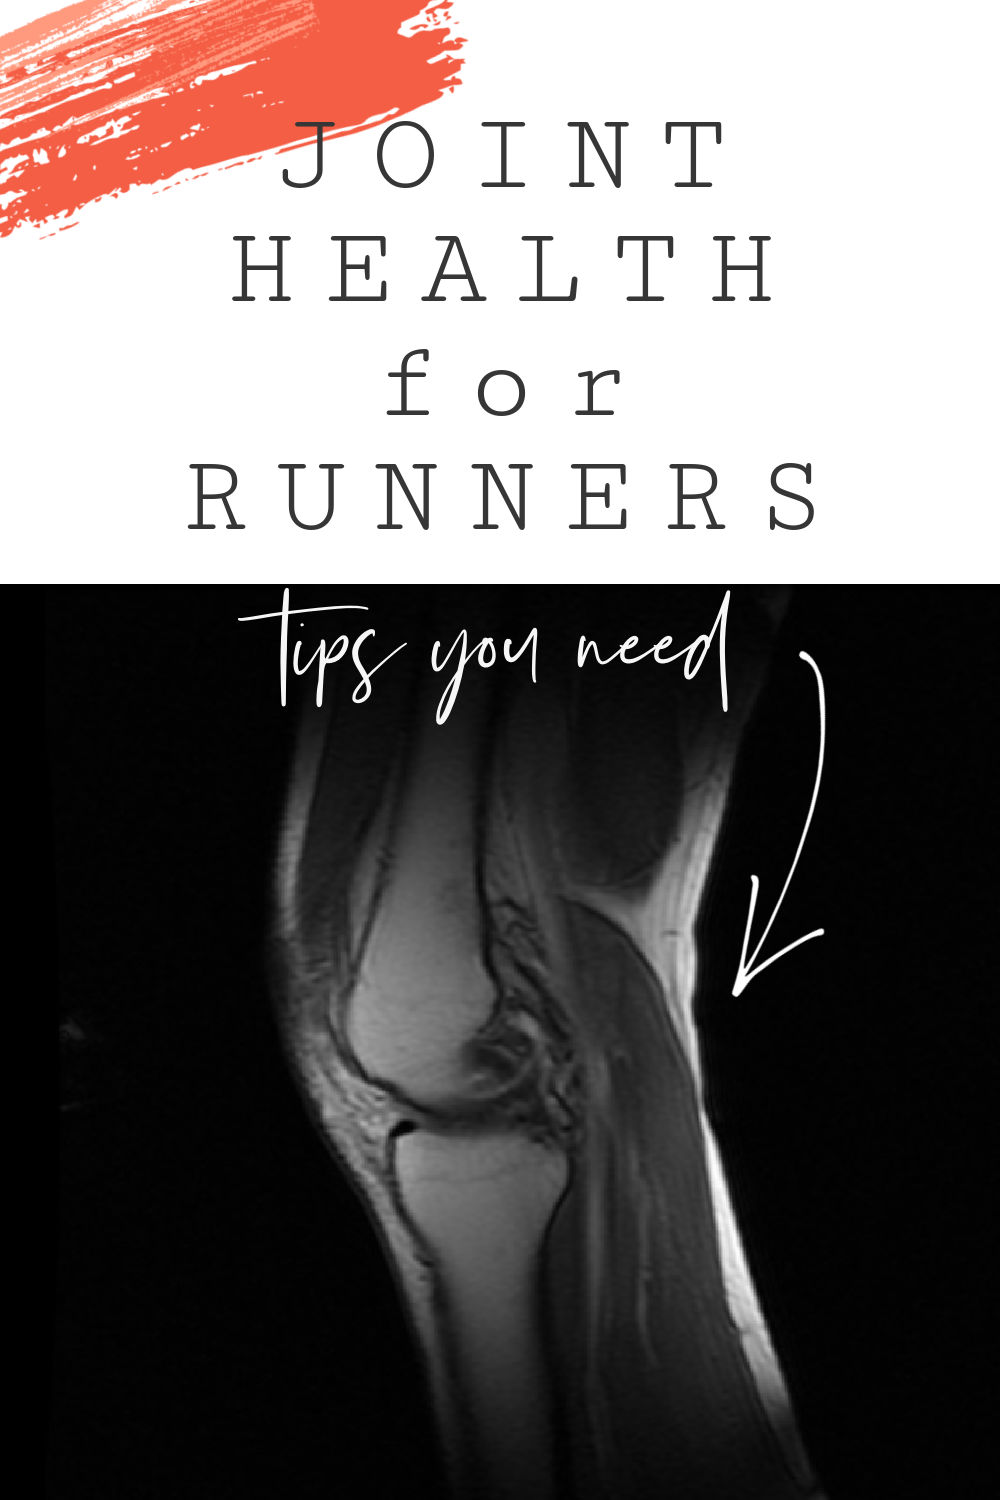 Joint Health for Runners and tips